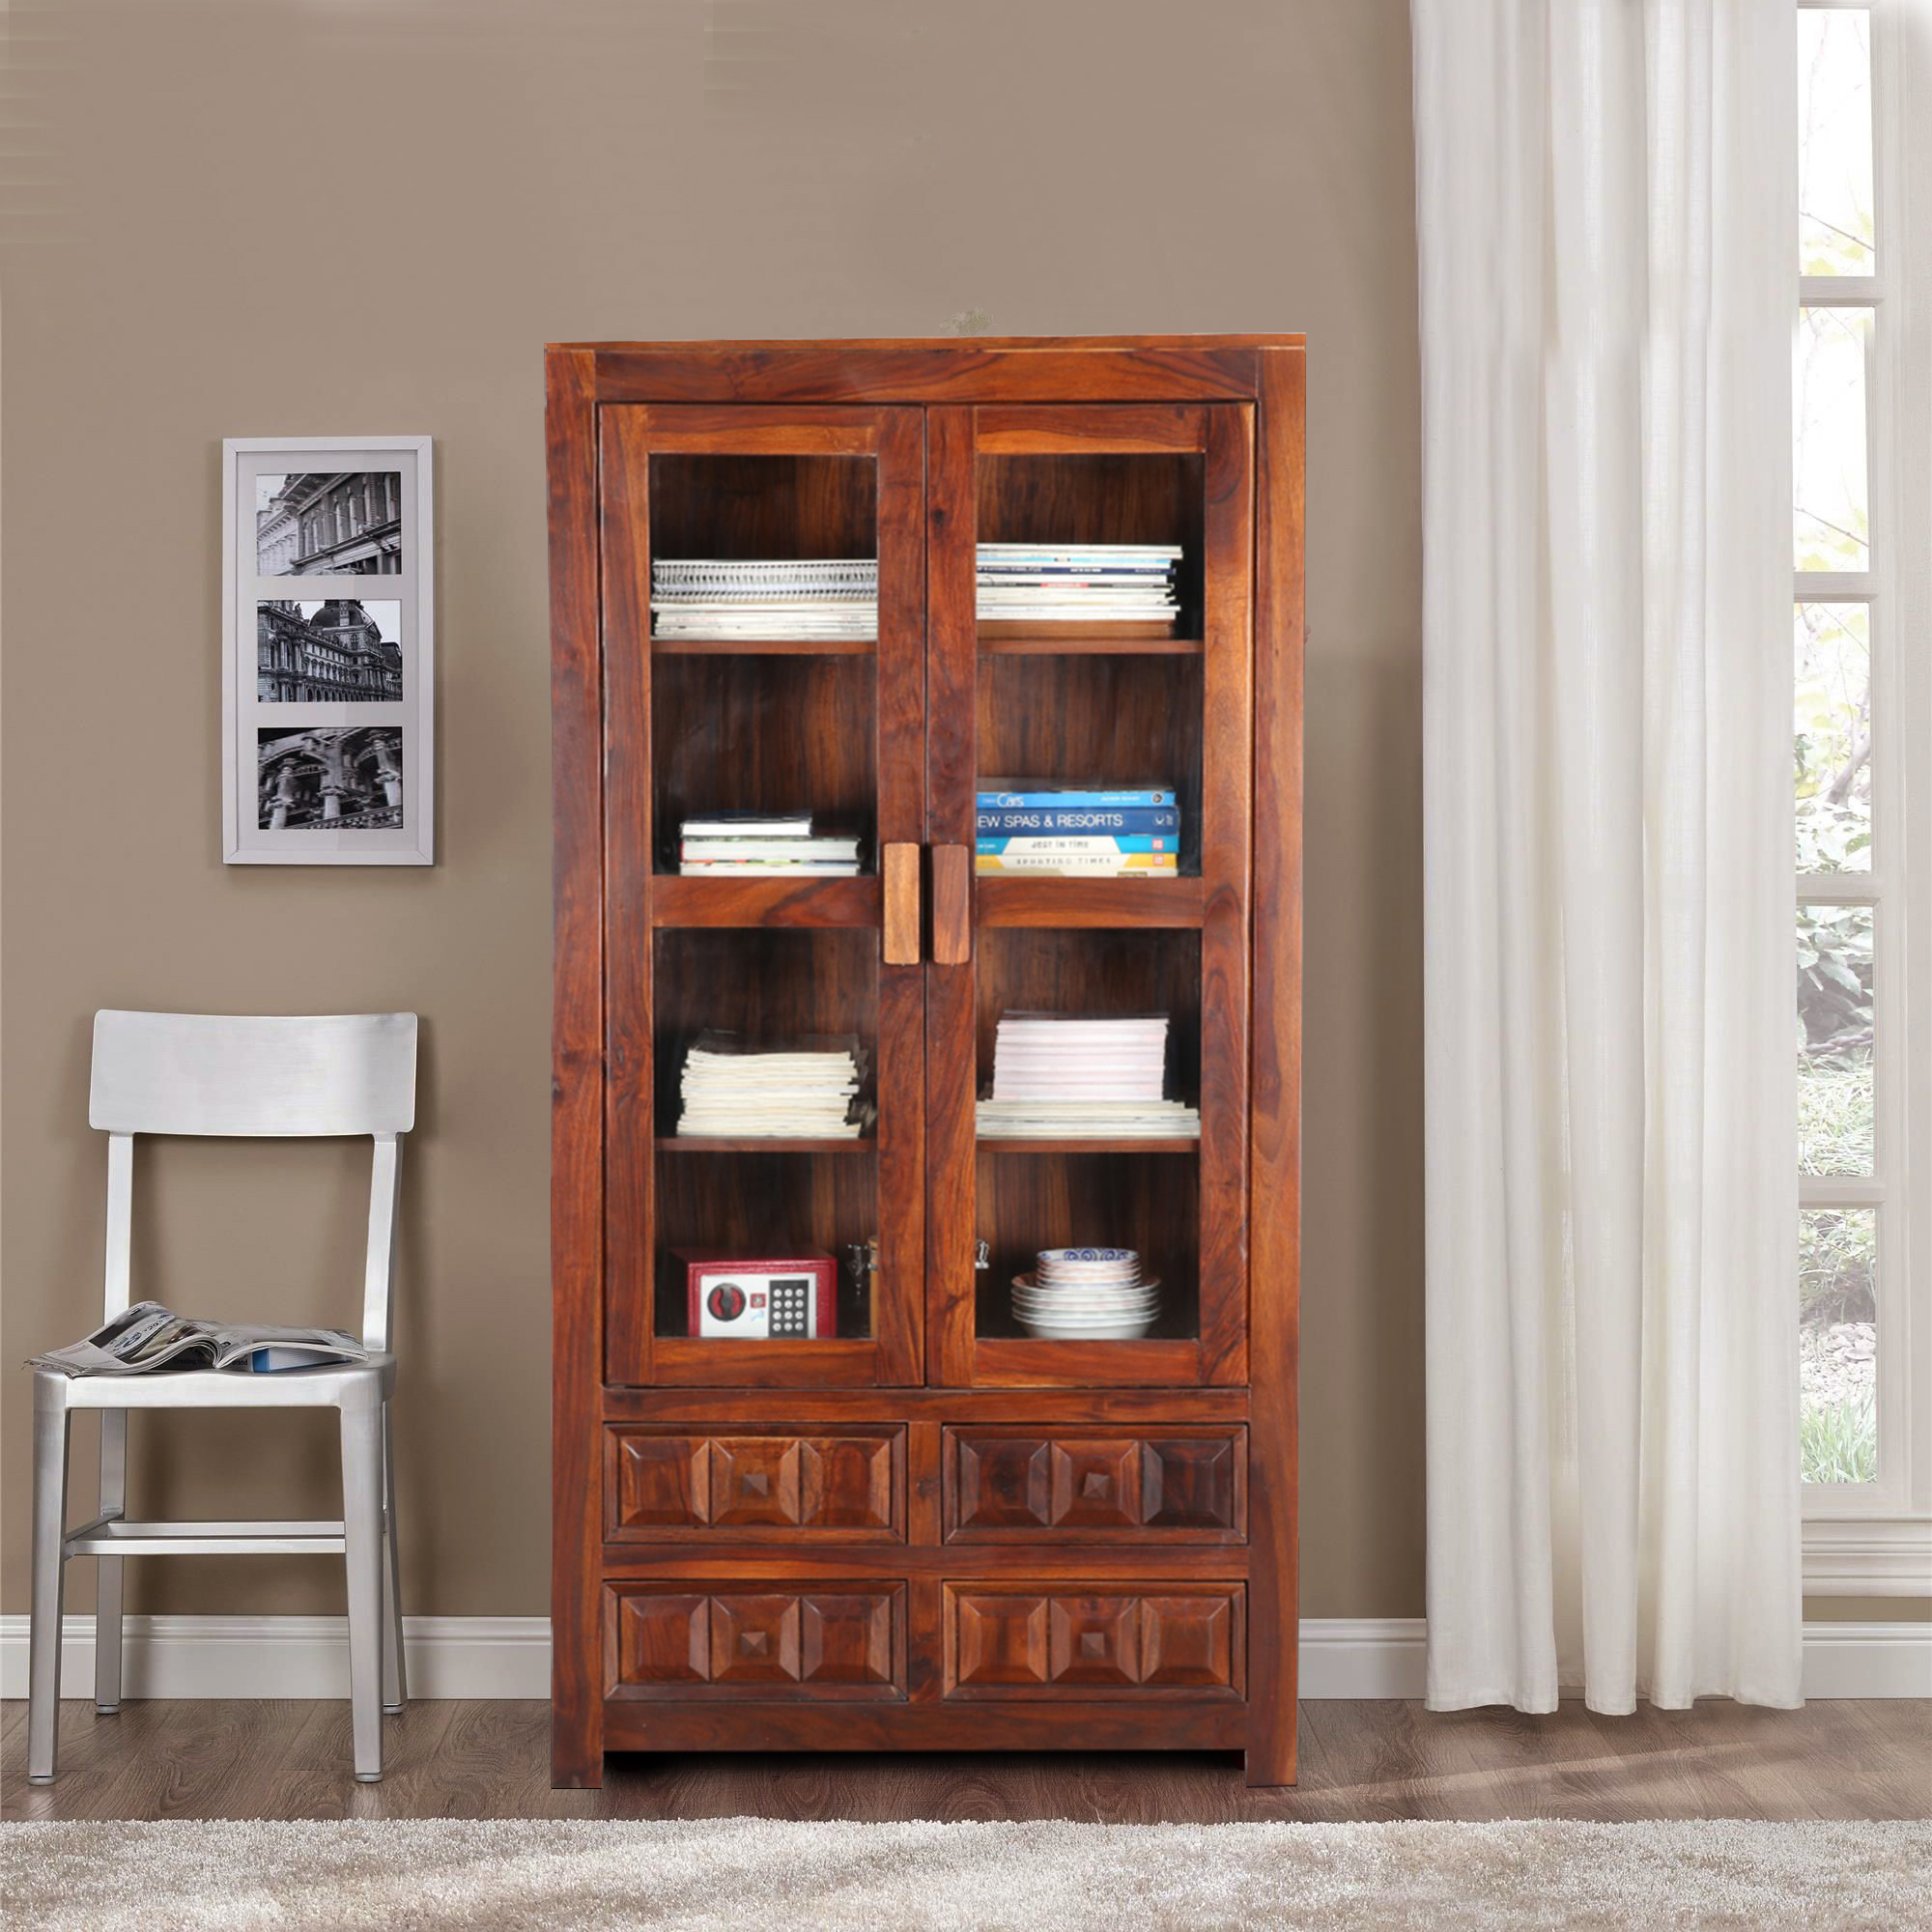 Woodrow Solid Wood Book Shelf in Nut Brown Colour by HomeTown